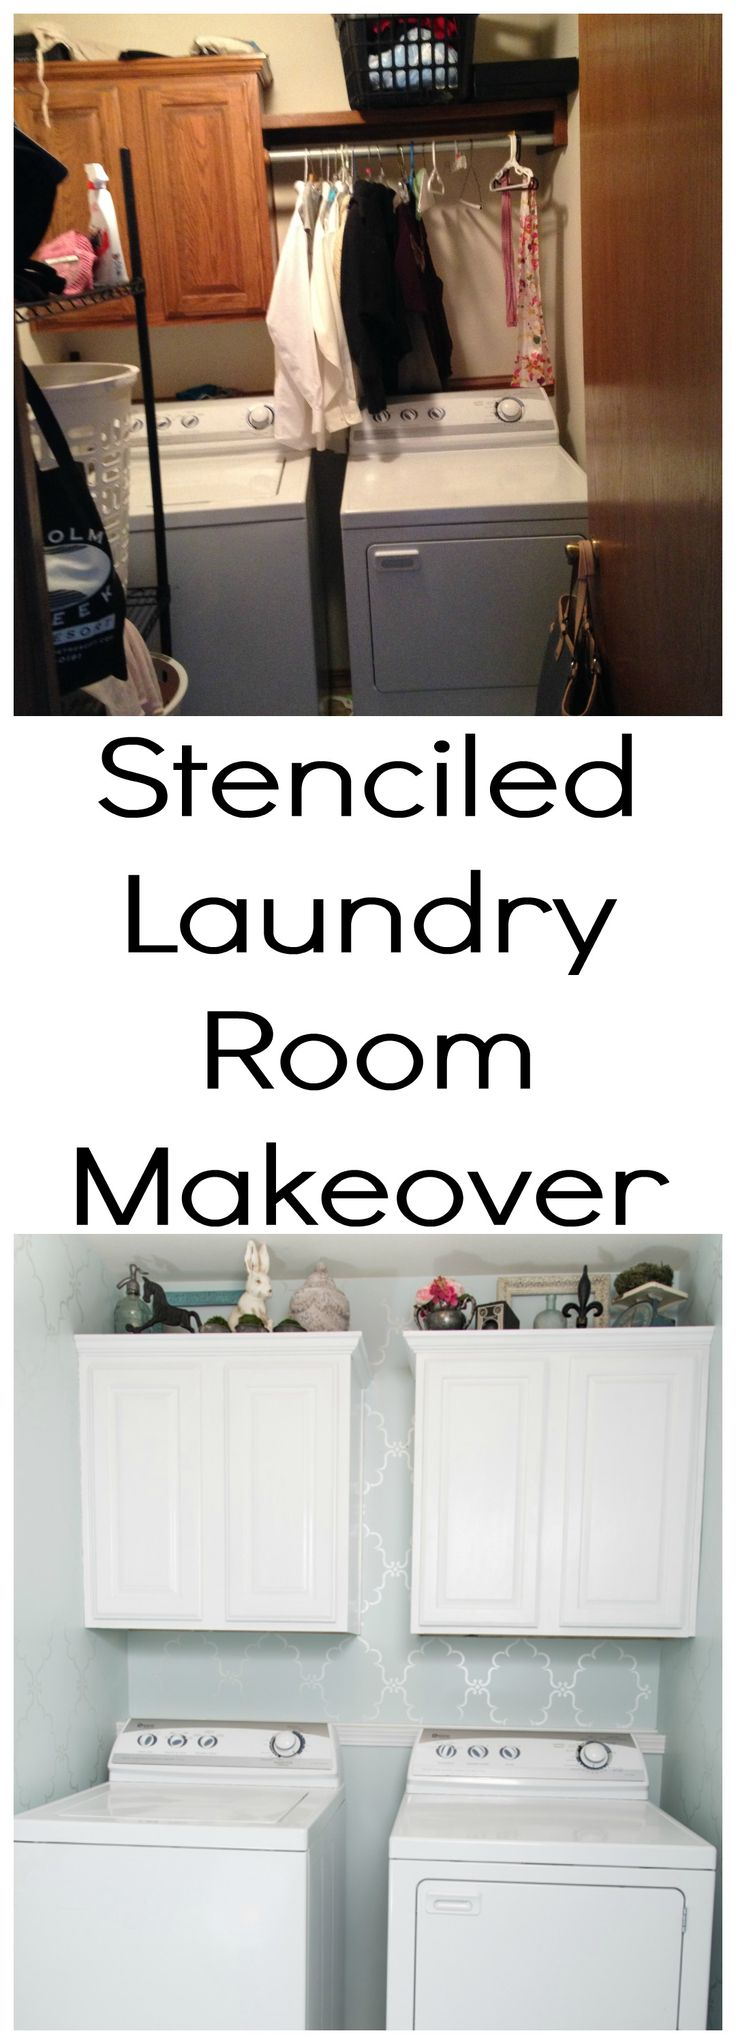 Stenciled Laundry Room Makeover by Restoration Redoux